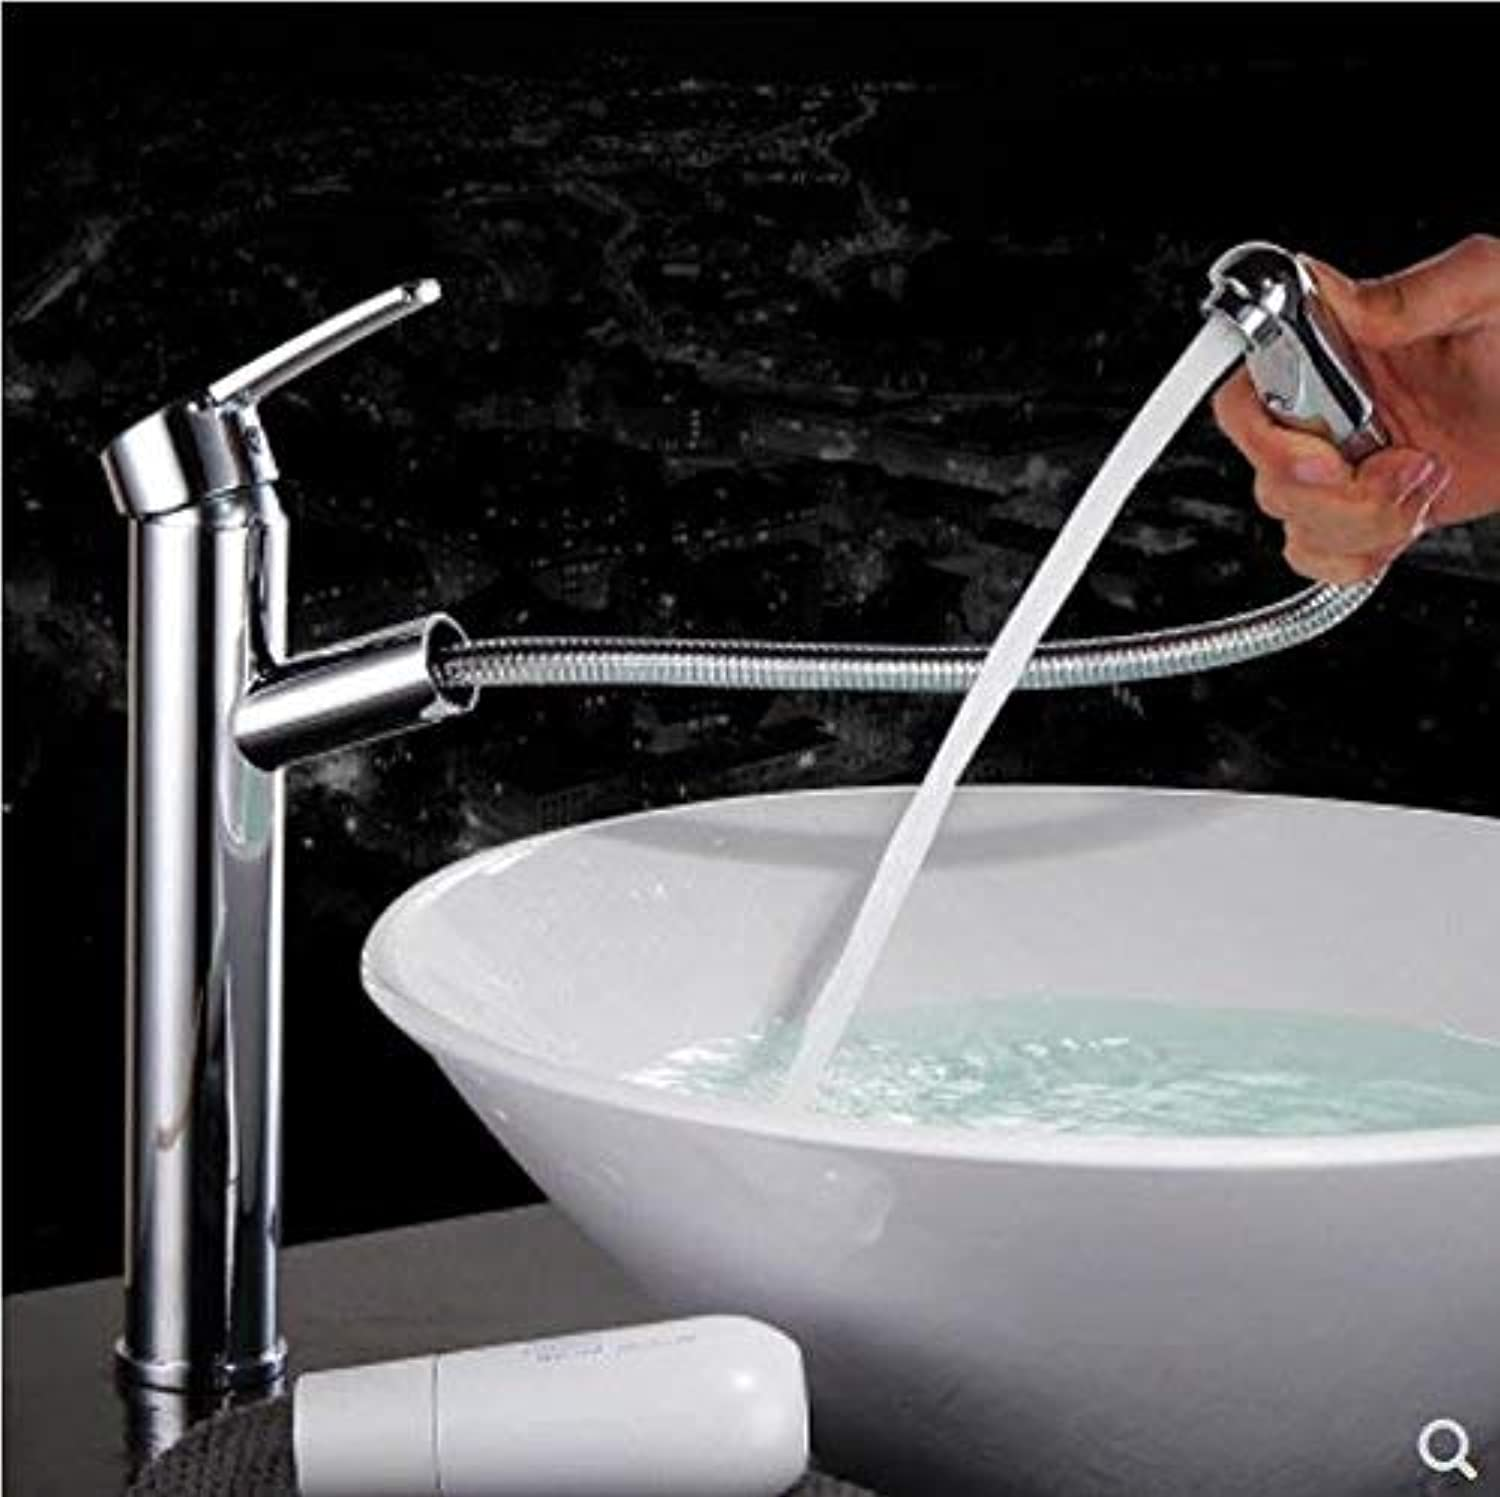 Oudan All Copper Pulling Faucet Stretchable Expansion and Contraction Hot and Cold Shampoo Art Chrome Basin Chrome Bath Head Ceramic Plate Spool Chrome Plating,A (color   B, Size   -)